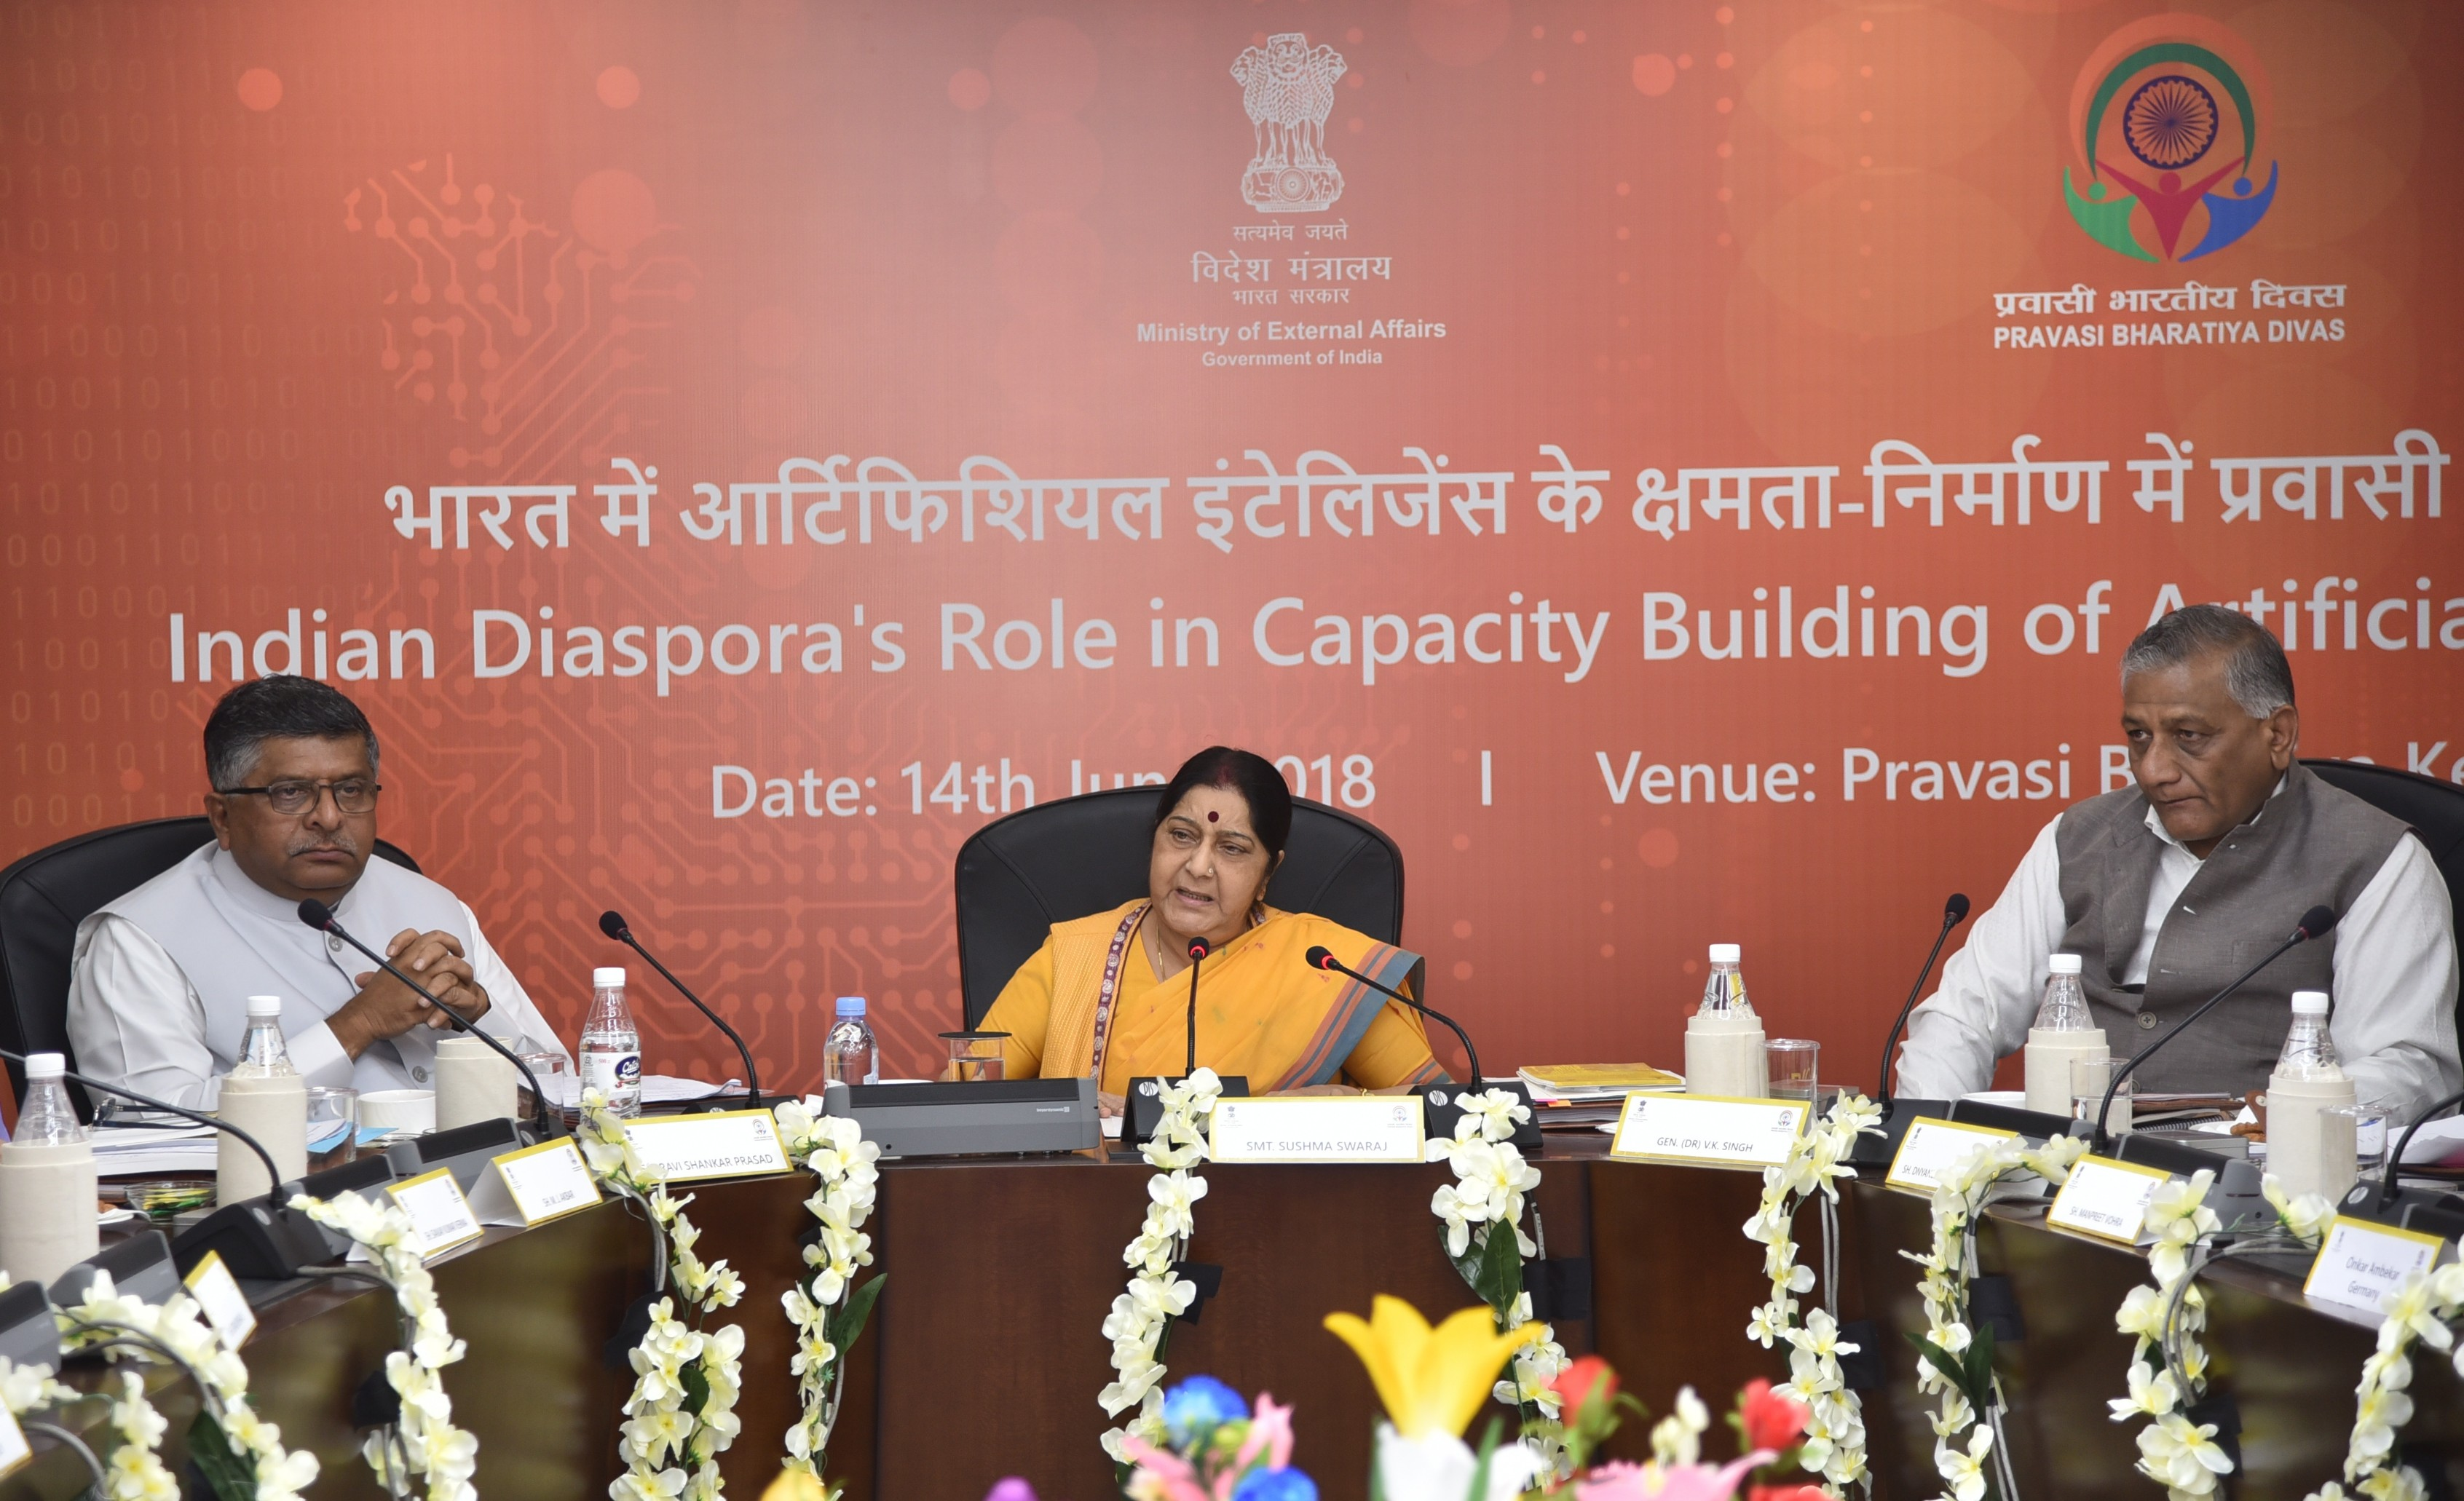 EAM chairs panel on ''Indian Diaspora's Role in Capacity Building of Artificial Intelligence in India'' in New Delhi.